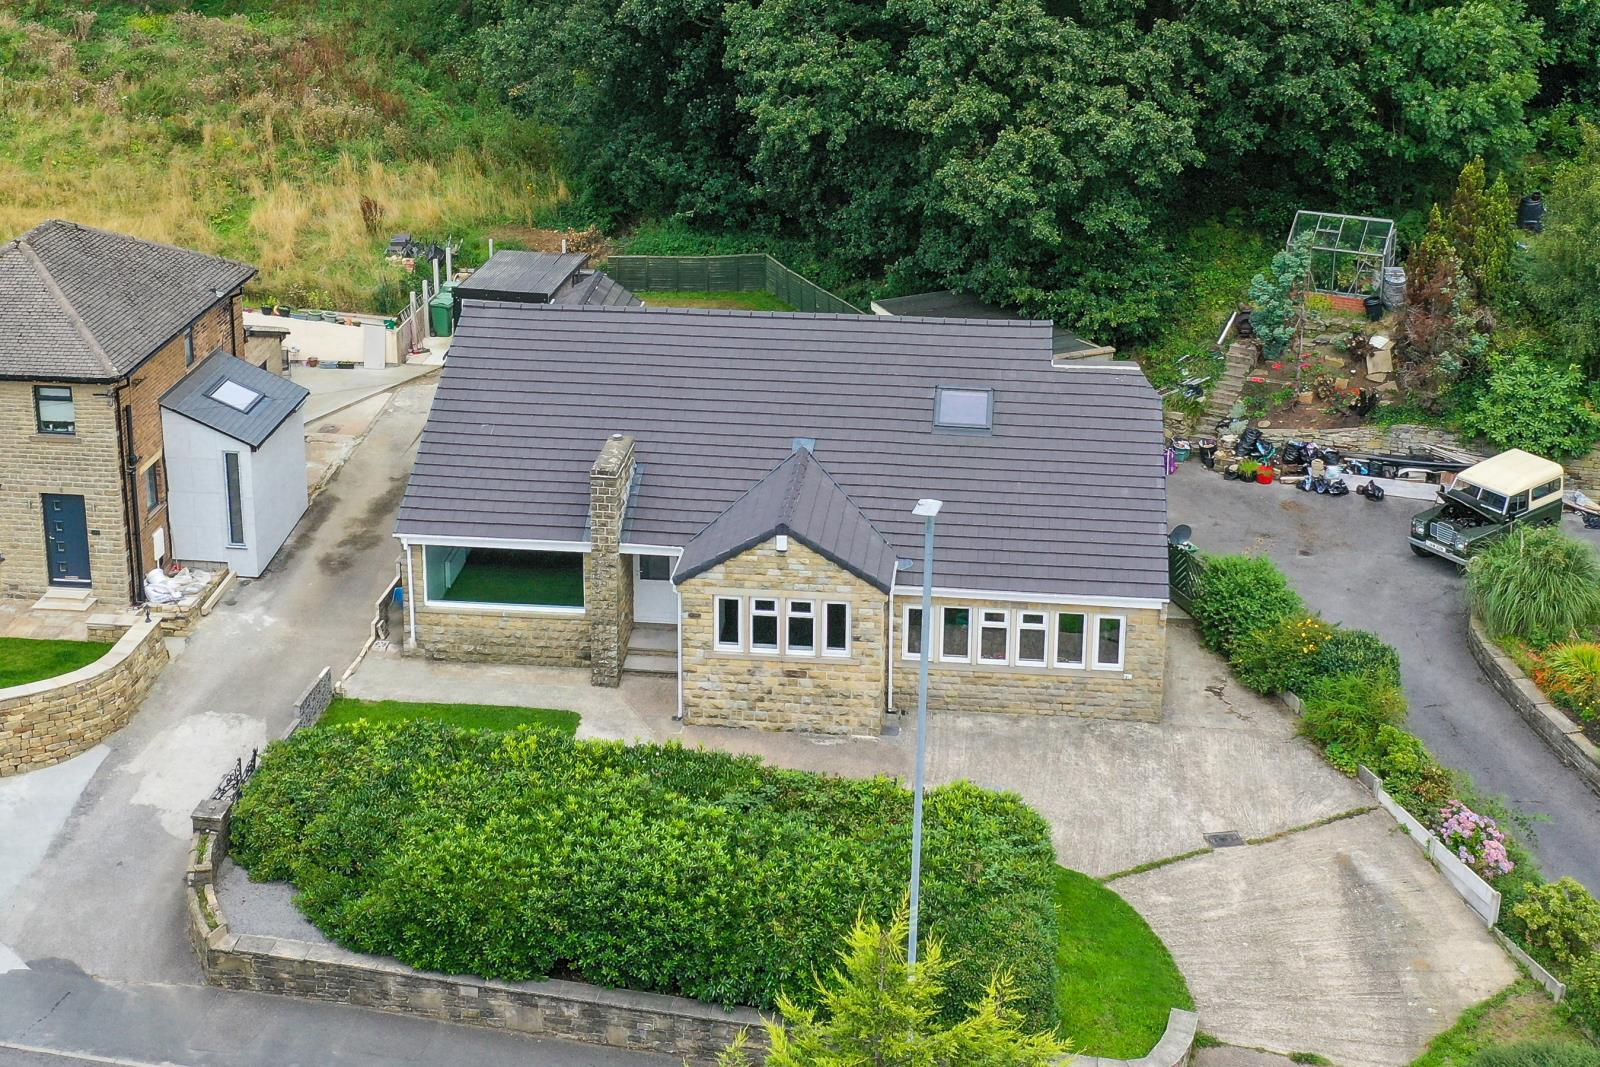 Greenacres, 124a Greenfield Road, Holmfirth, HD9 2LP